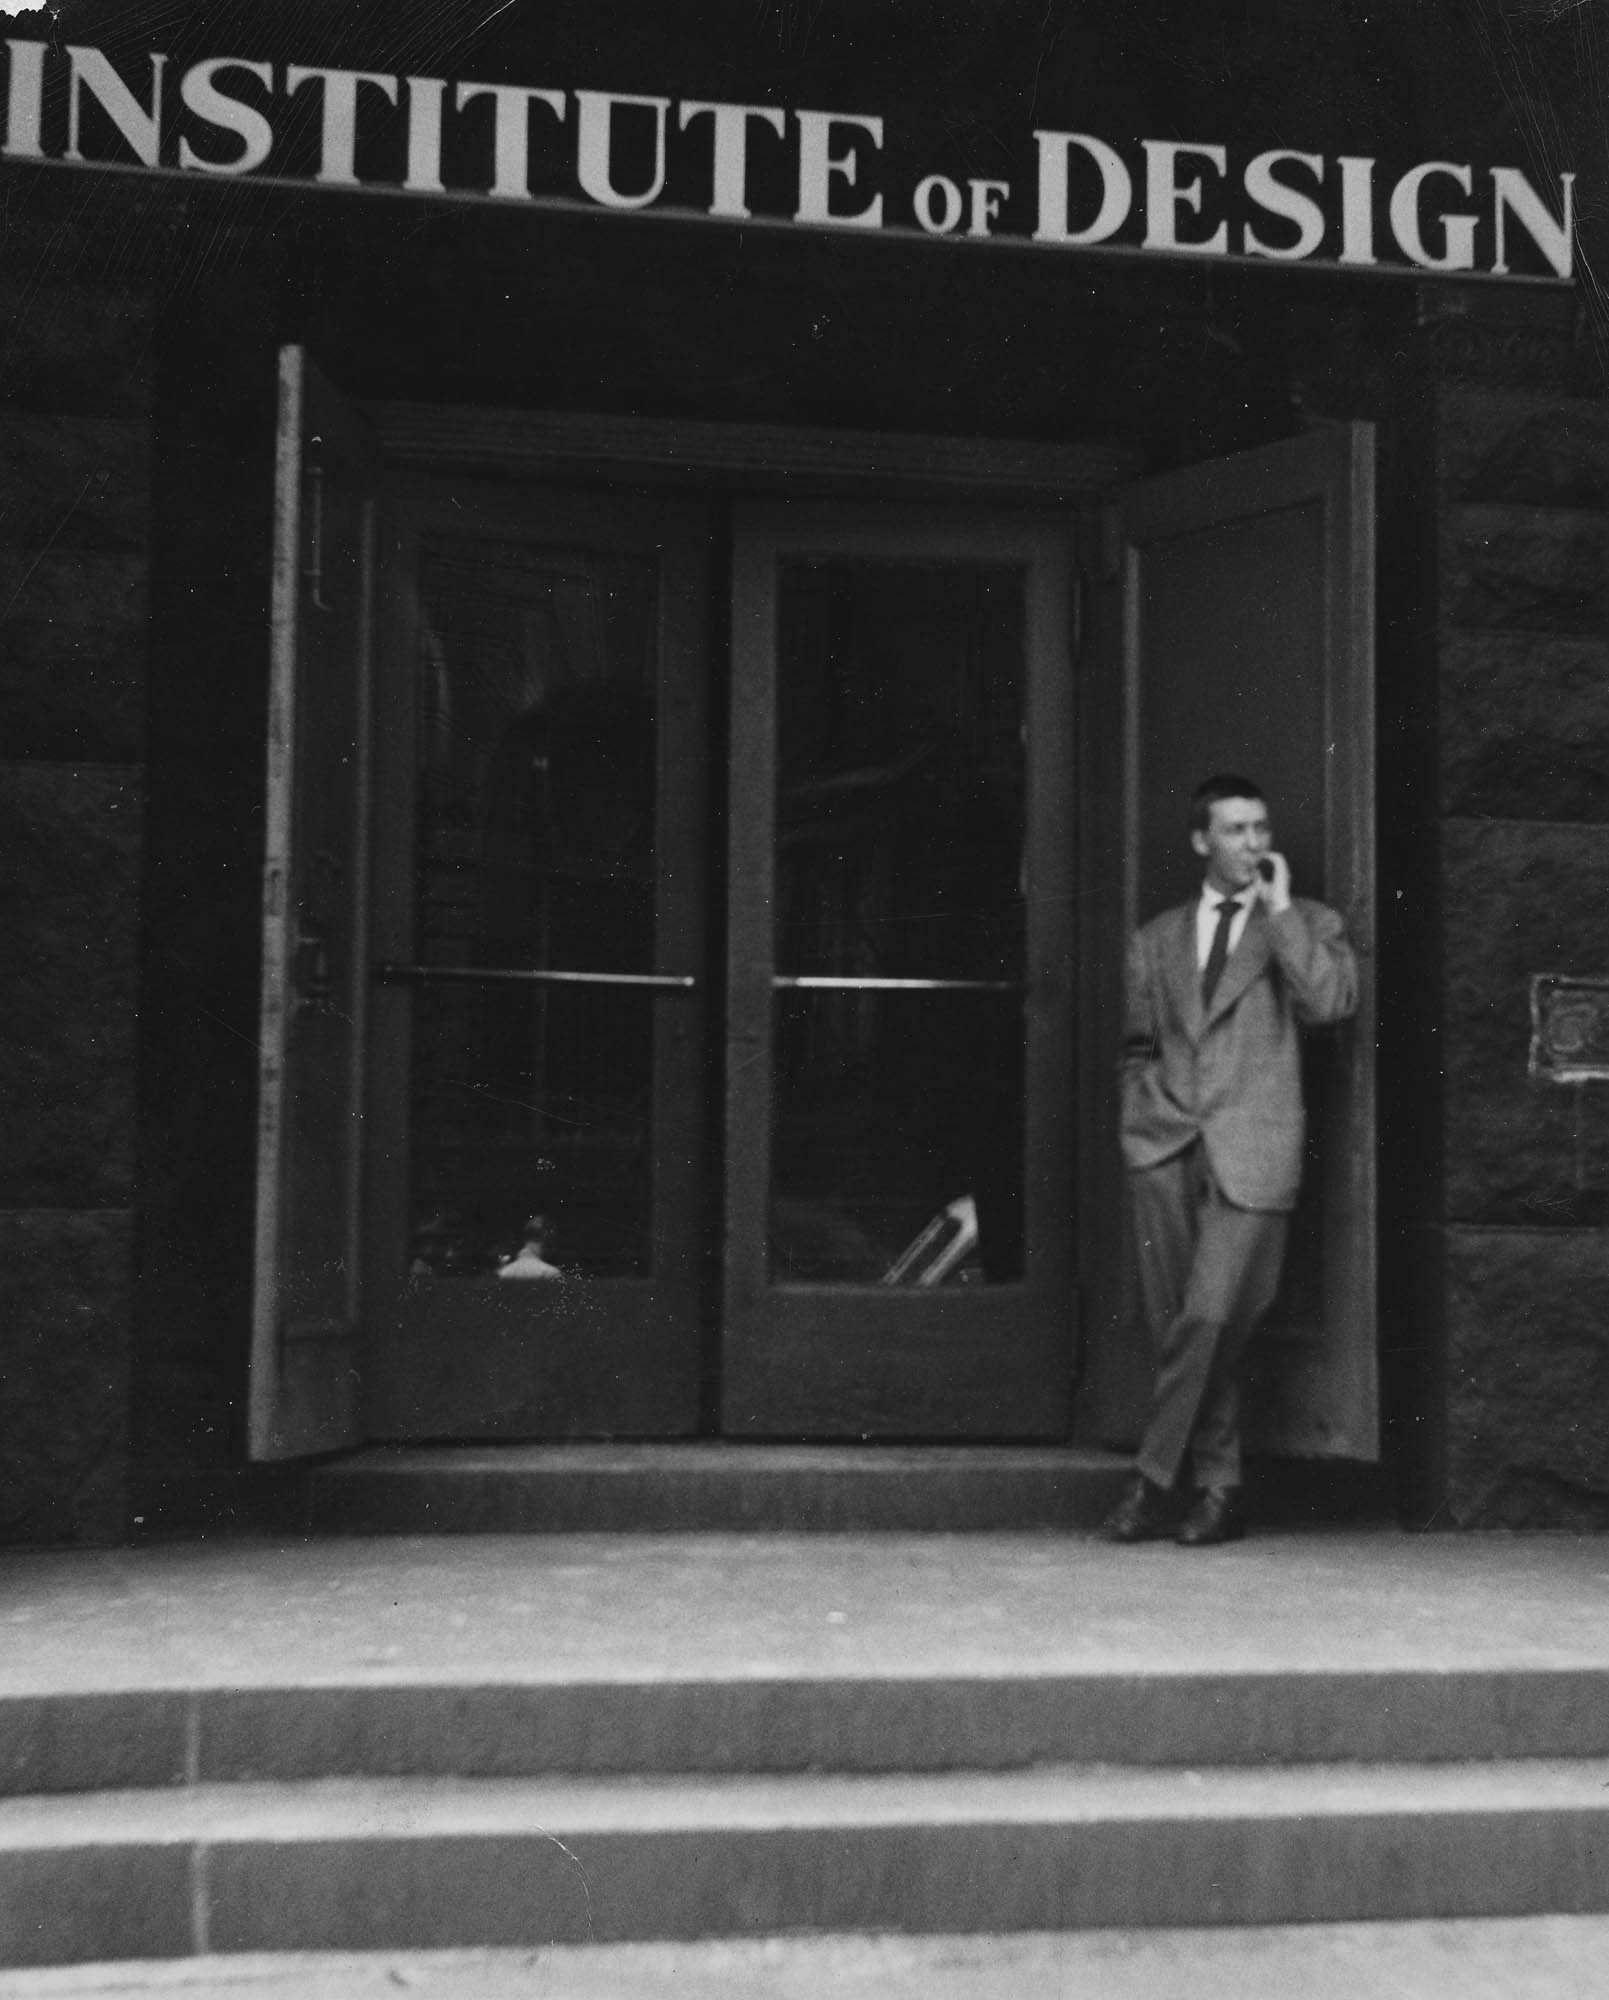 BJ outside of Institute of Design Chicago 1944